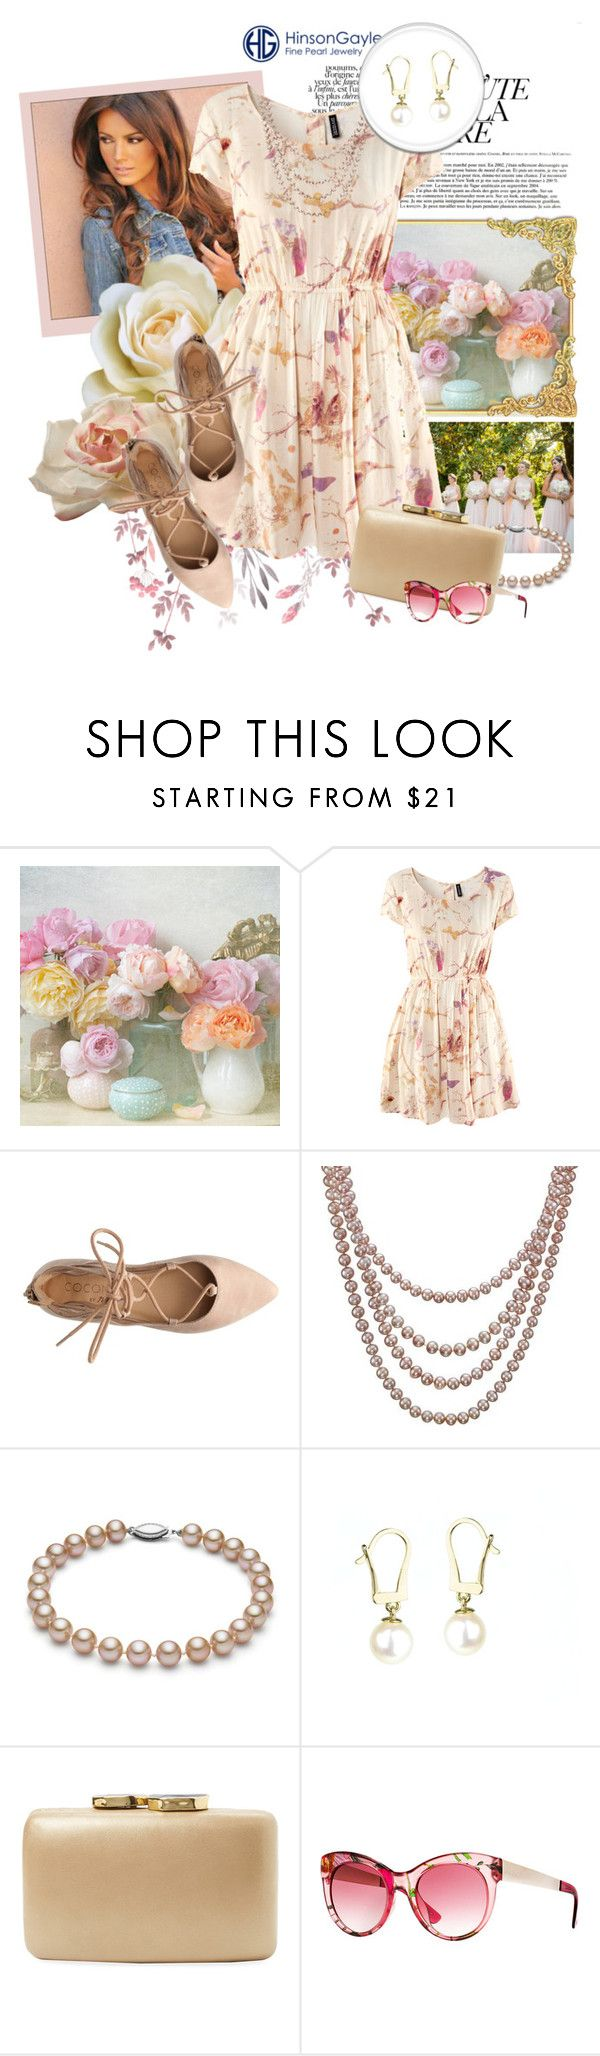 """HinsonGayle"" by sierraday ❤ liked on Polyvore featuring Primp, H&M, Kayu and Gucci"